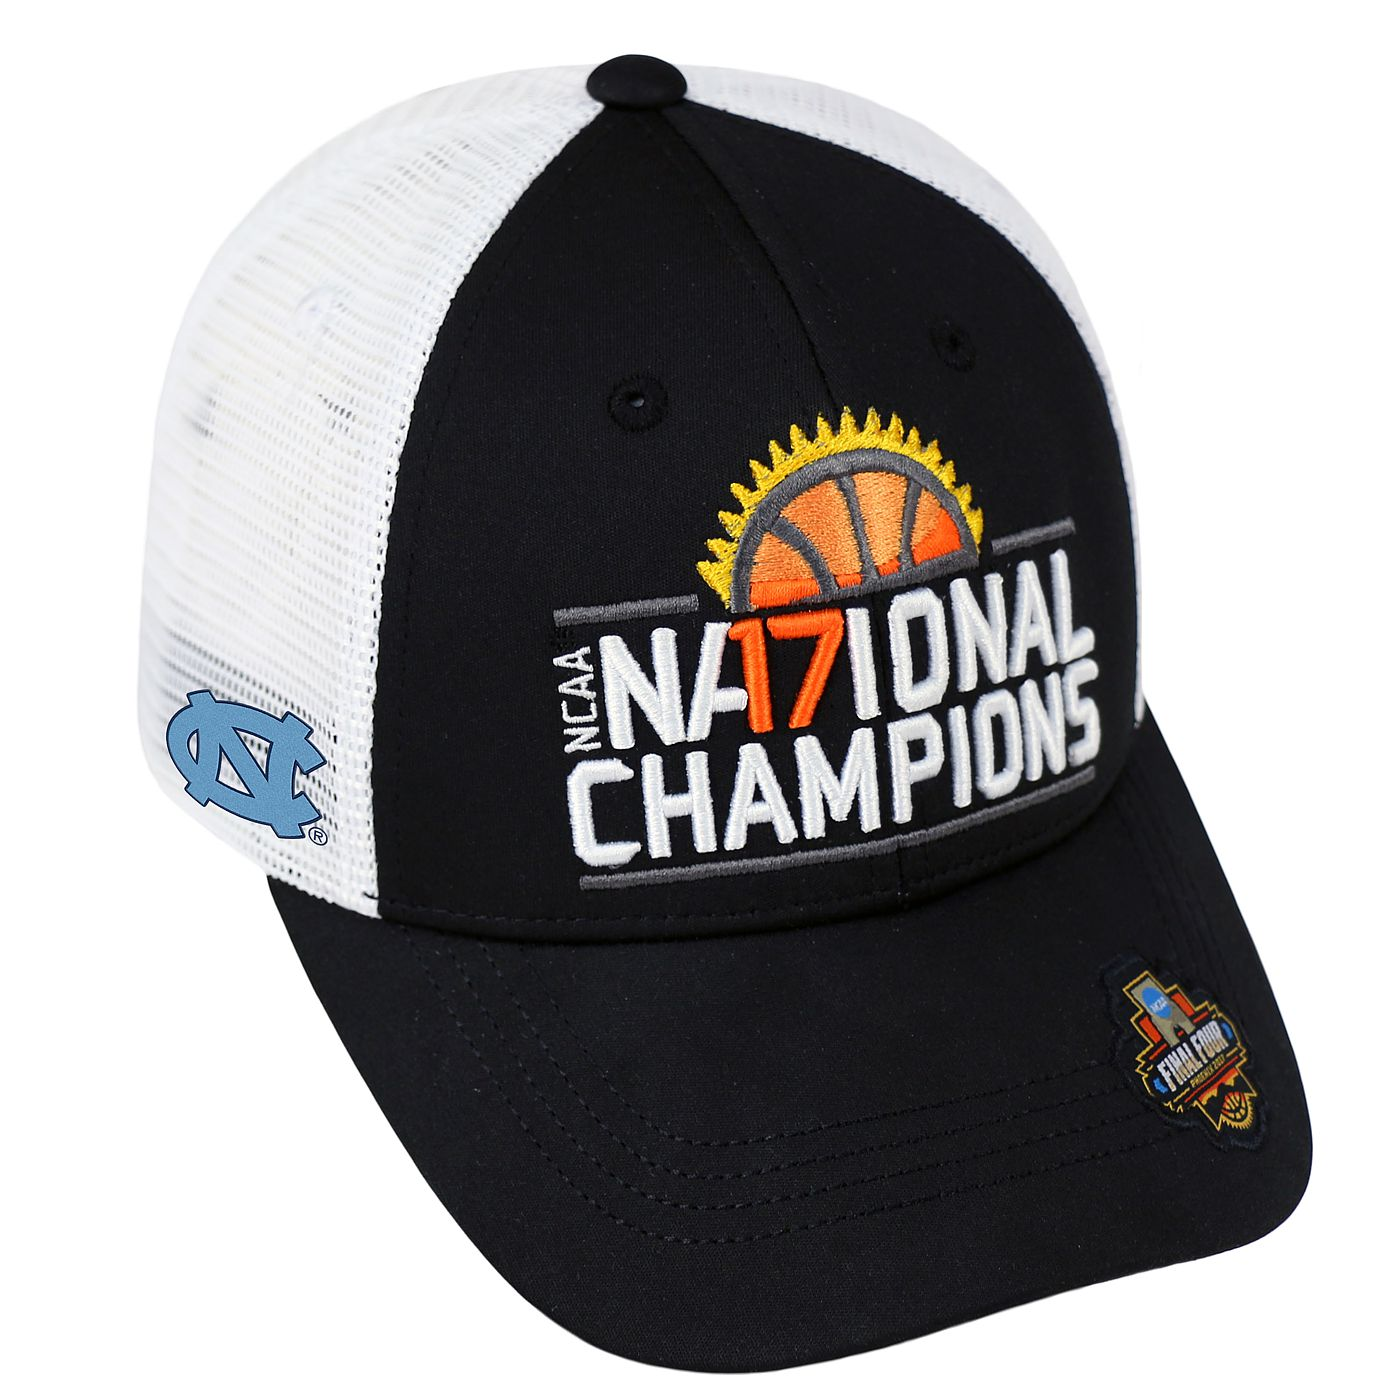 b05a2bb6873 Johnny T-shirt - North Carolina Tar Heels - 2017 National Champs Ranger Hat  (Black White) by Top of the World